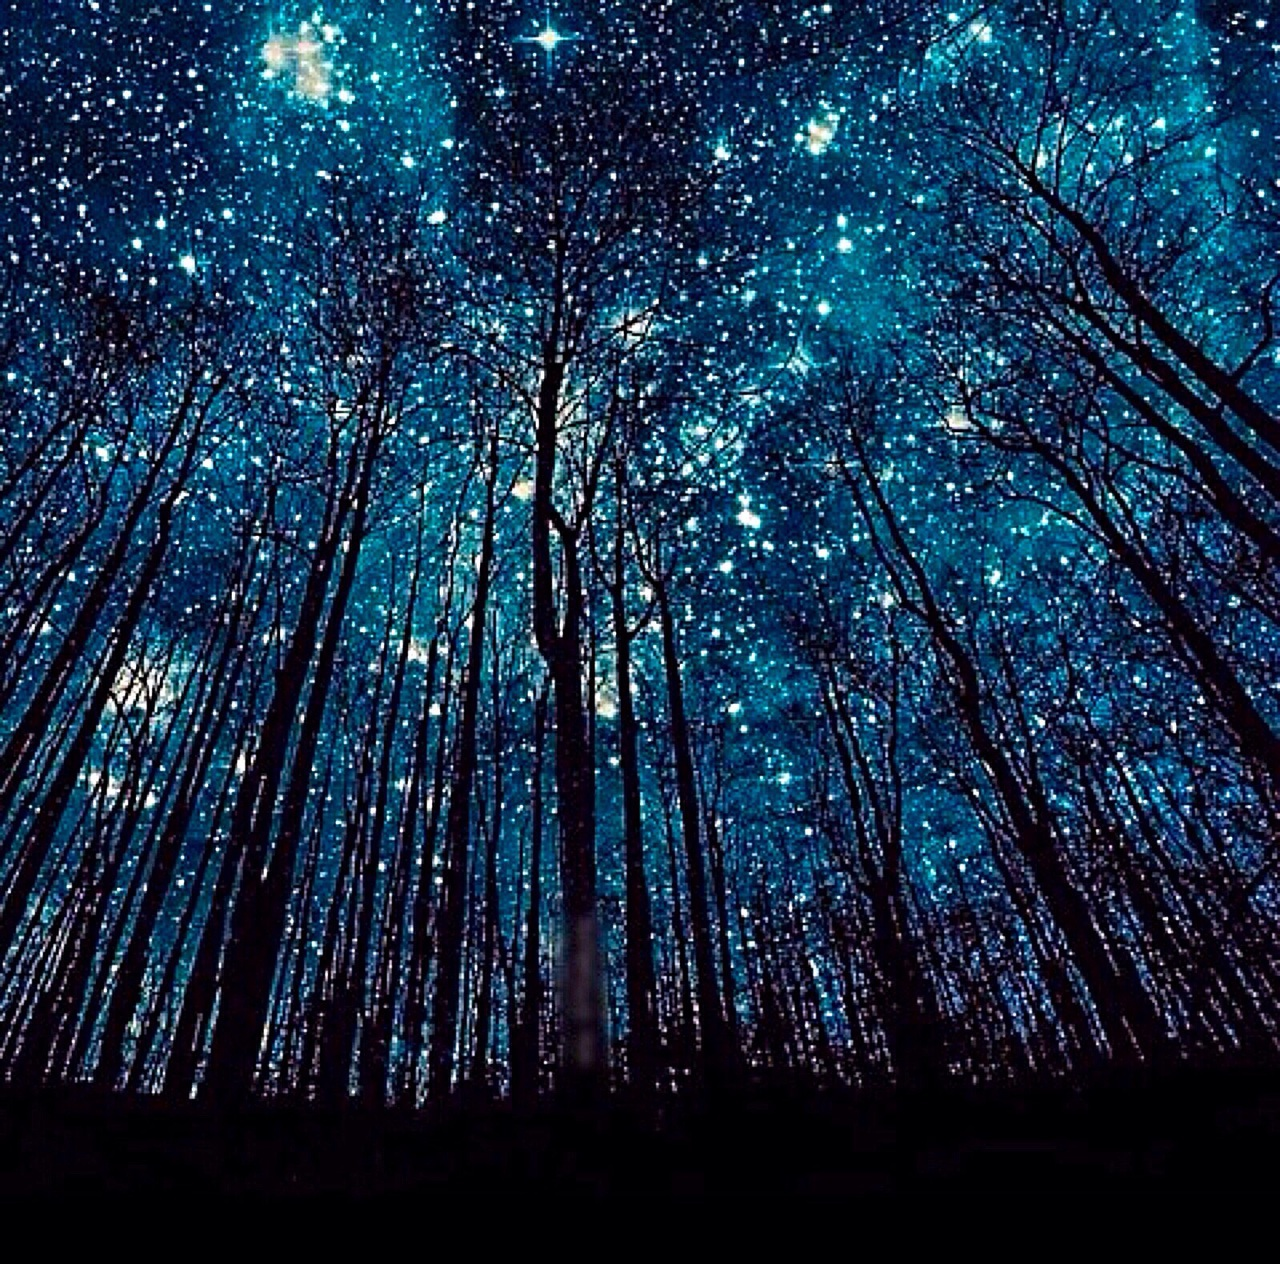 alternative, amazing, art, artwork, awesome, beautiful, blue, bright, cool, creative, dark, grunge, hippie, life, nasa, nature, night, outer space, photograph, photography, pretty, sky, space, stars, summer, trees, space case